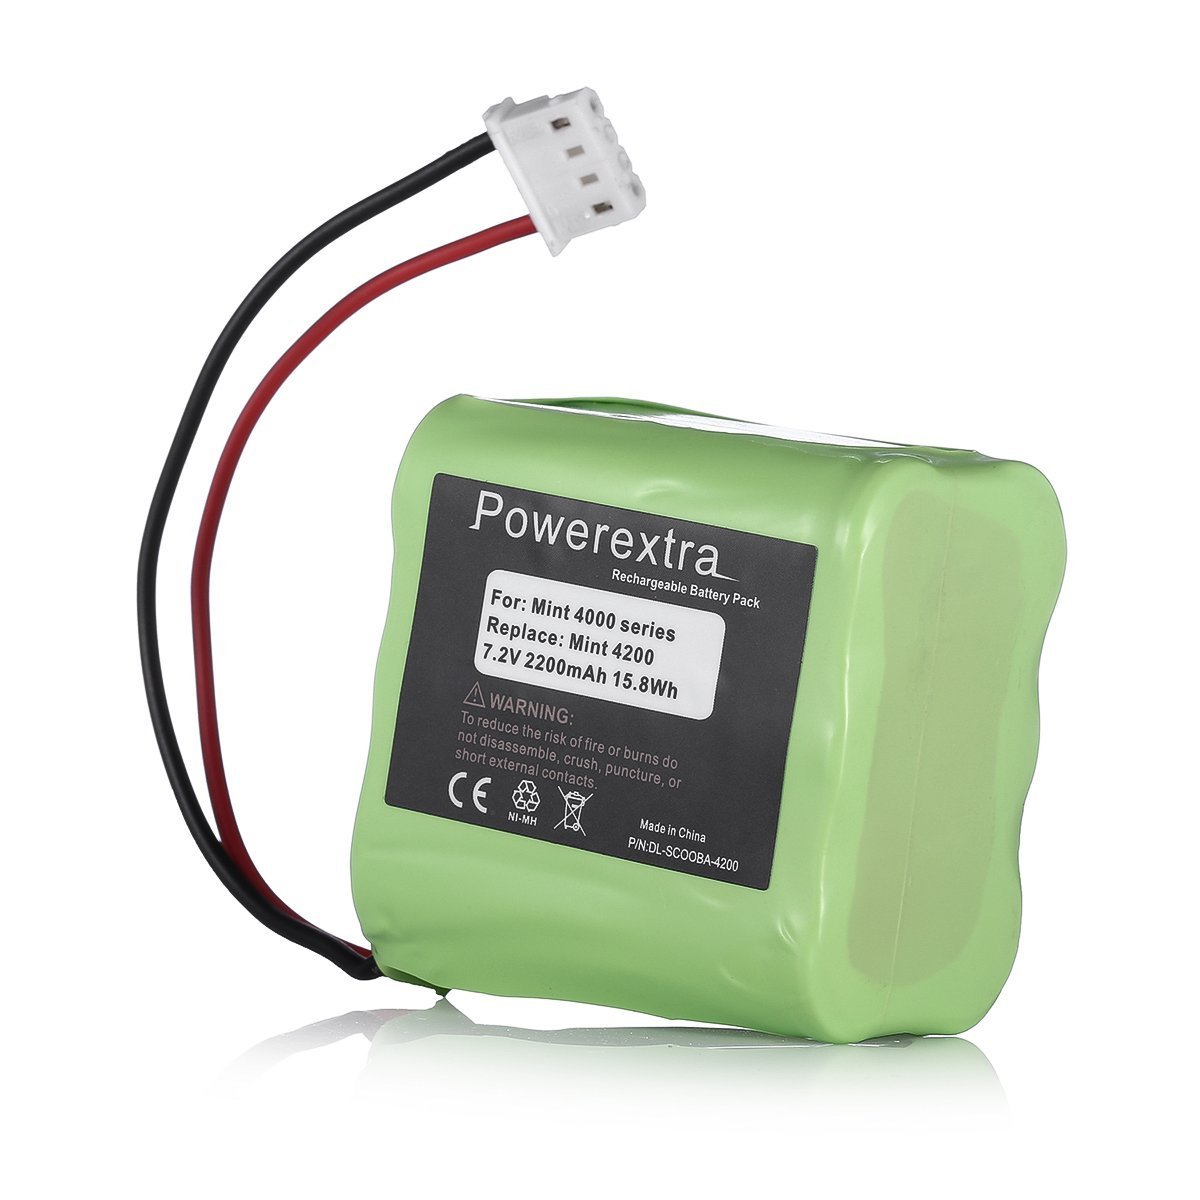 Powerextra 7.2V 2200mAh Replacement Battery Compatible with iRobot Braava 320/321 & Mint 4200/4205